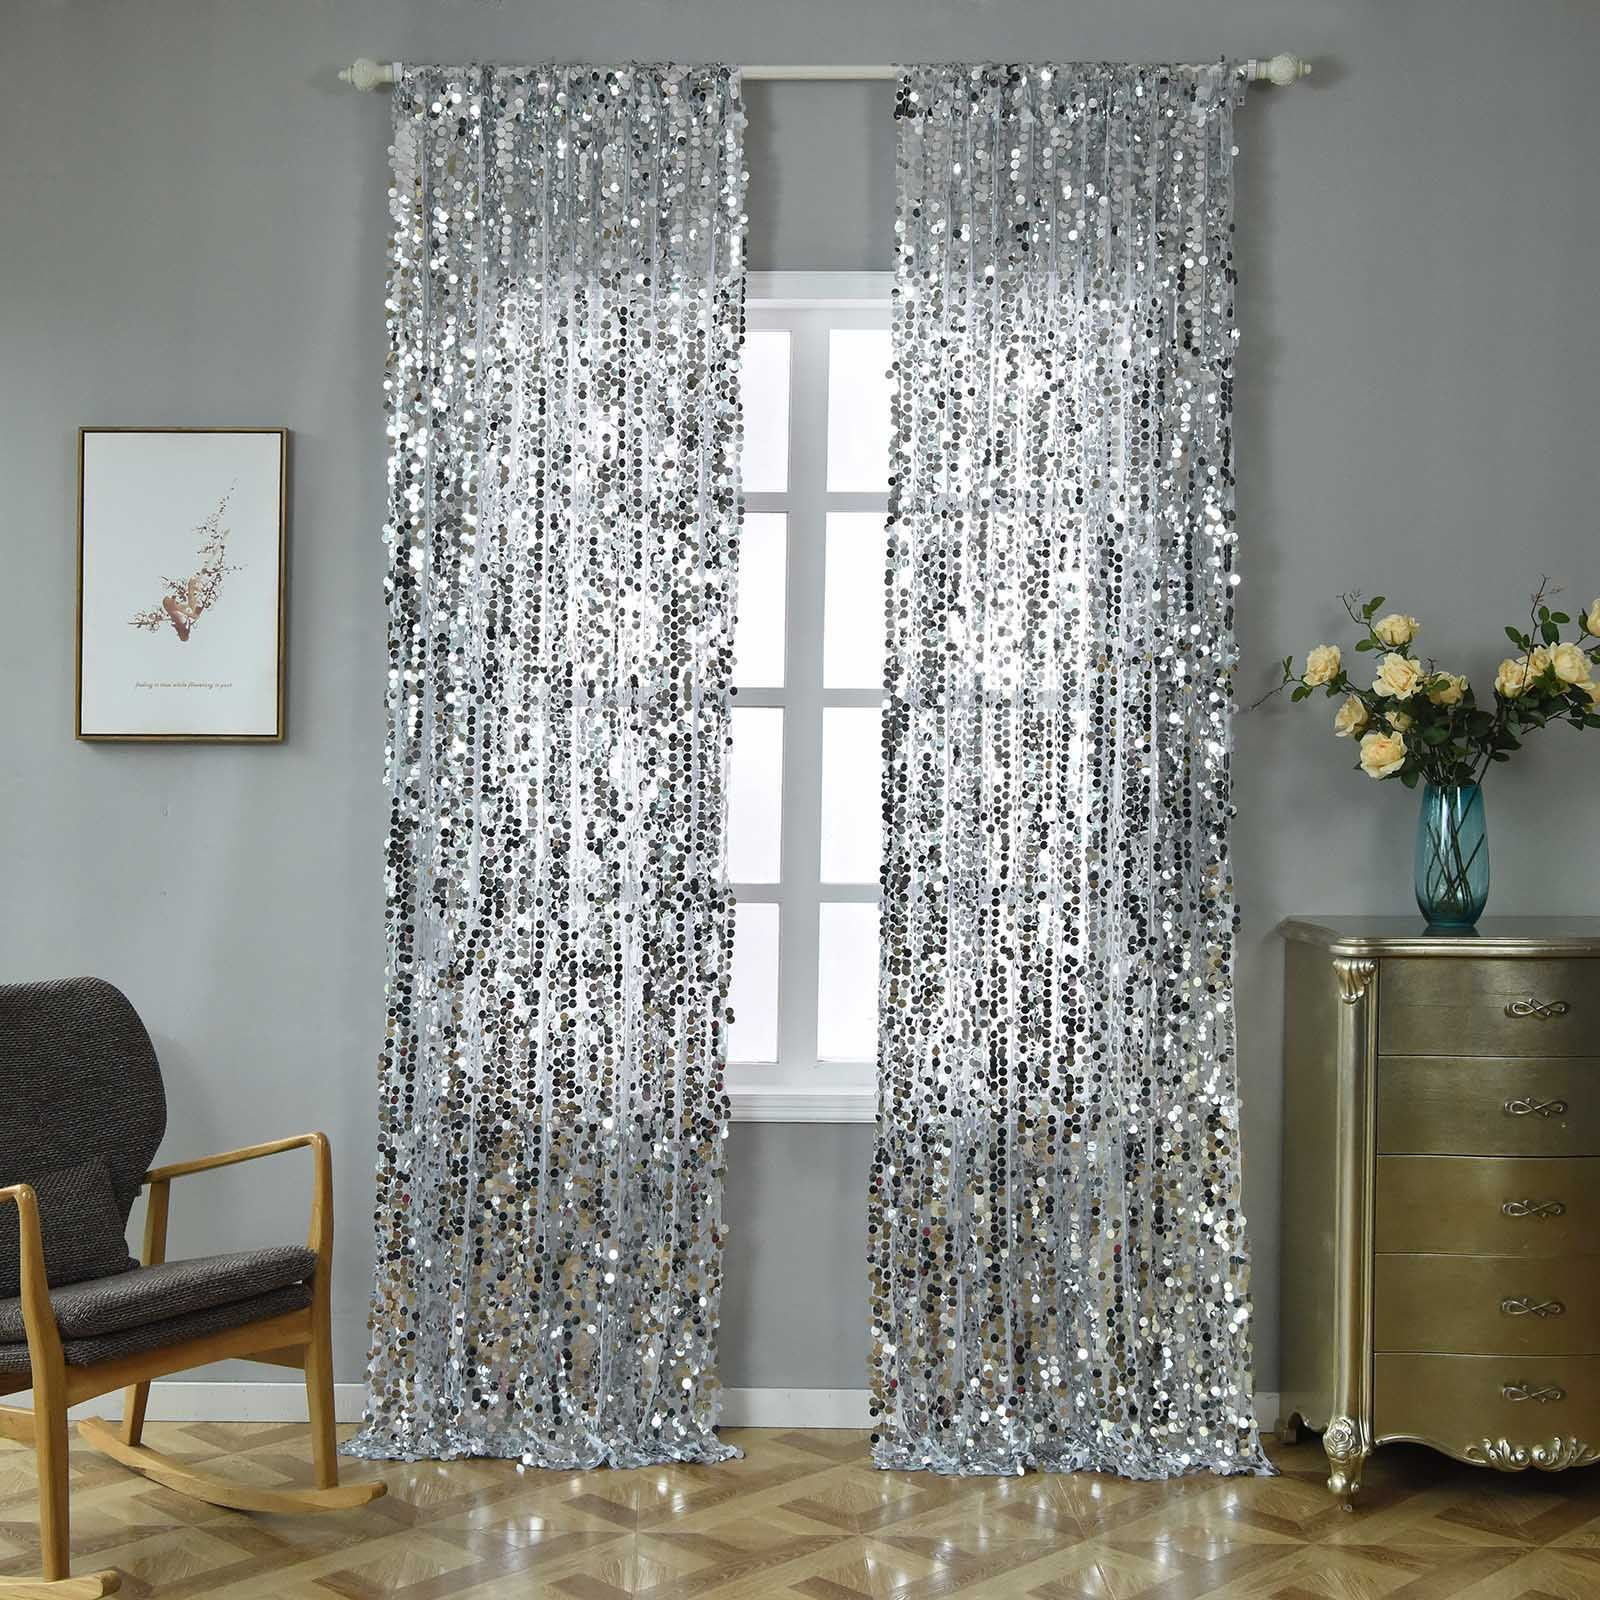 Home In 2020 Sequin Curtains Drapes Curtains Curtains